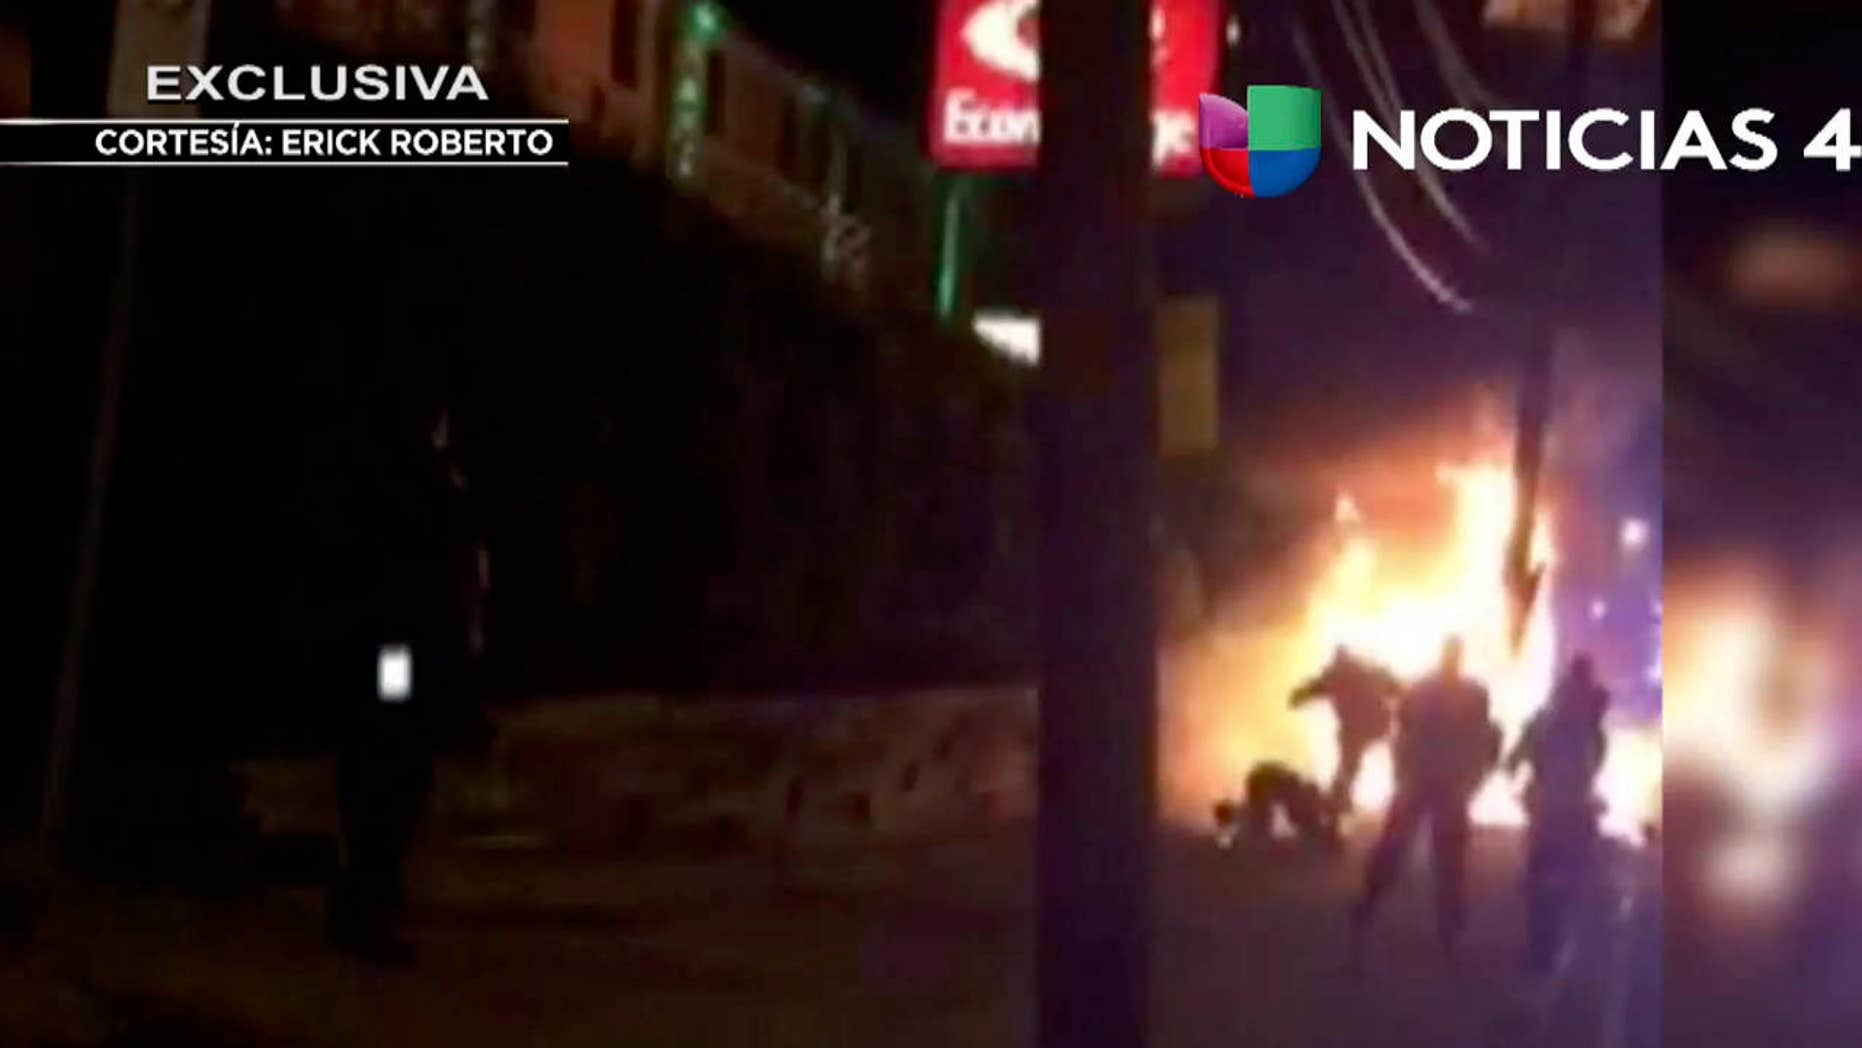 This image from video shot on June 4, 2017 shows a bystander being kicked by police officers, as he lies on the ground near flames, following an automobile chase that ended in a fiery crash, in Jersey City, N.J.